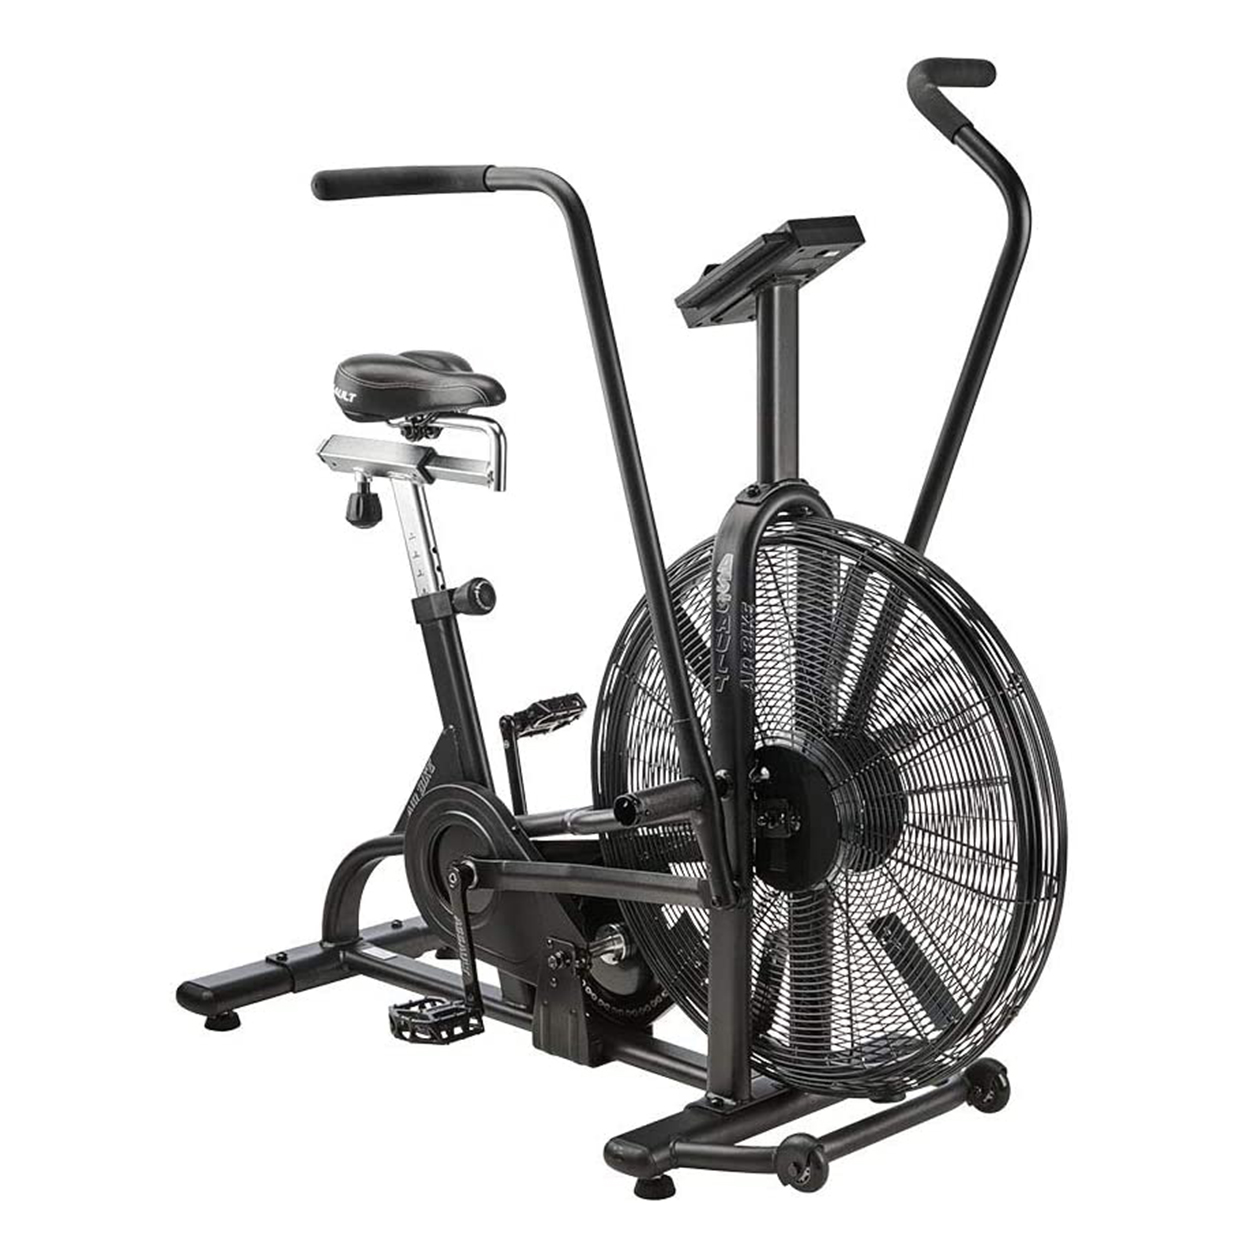 Assault AirBike to use during a fan bike workout